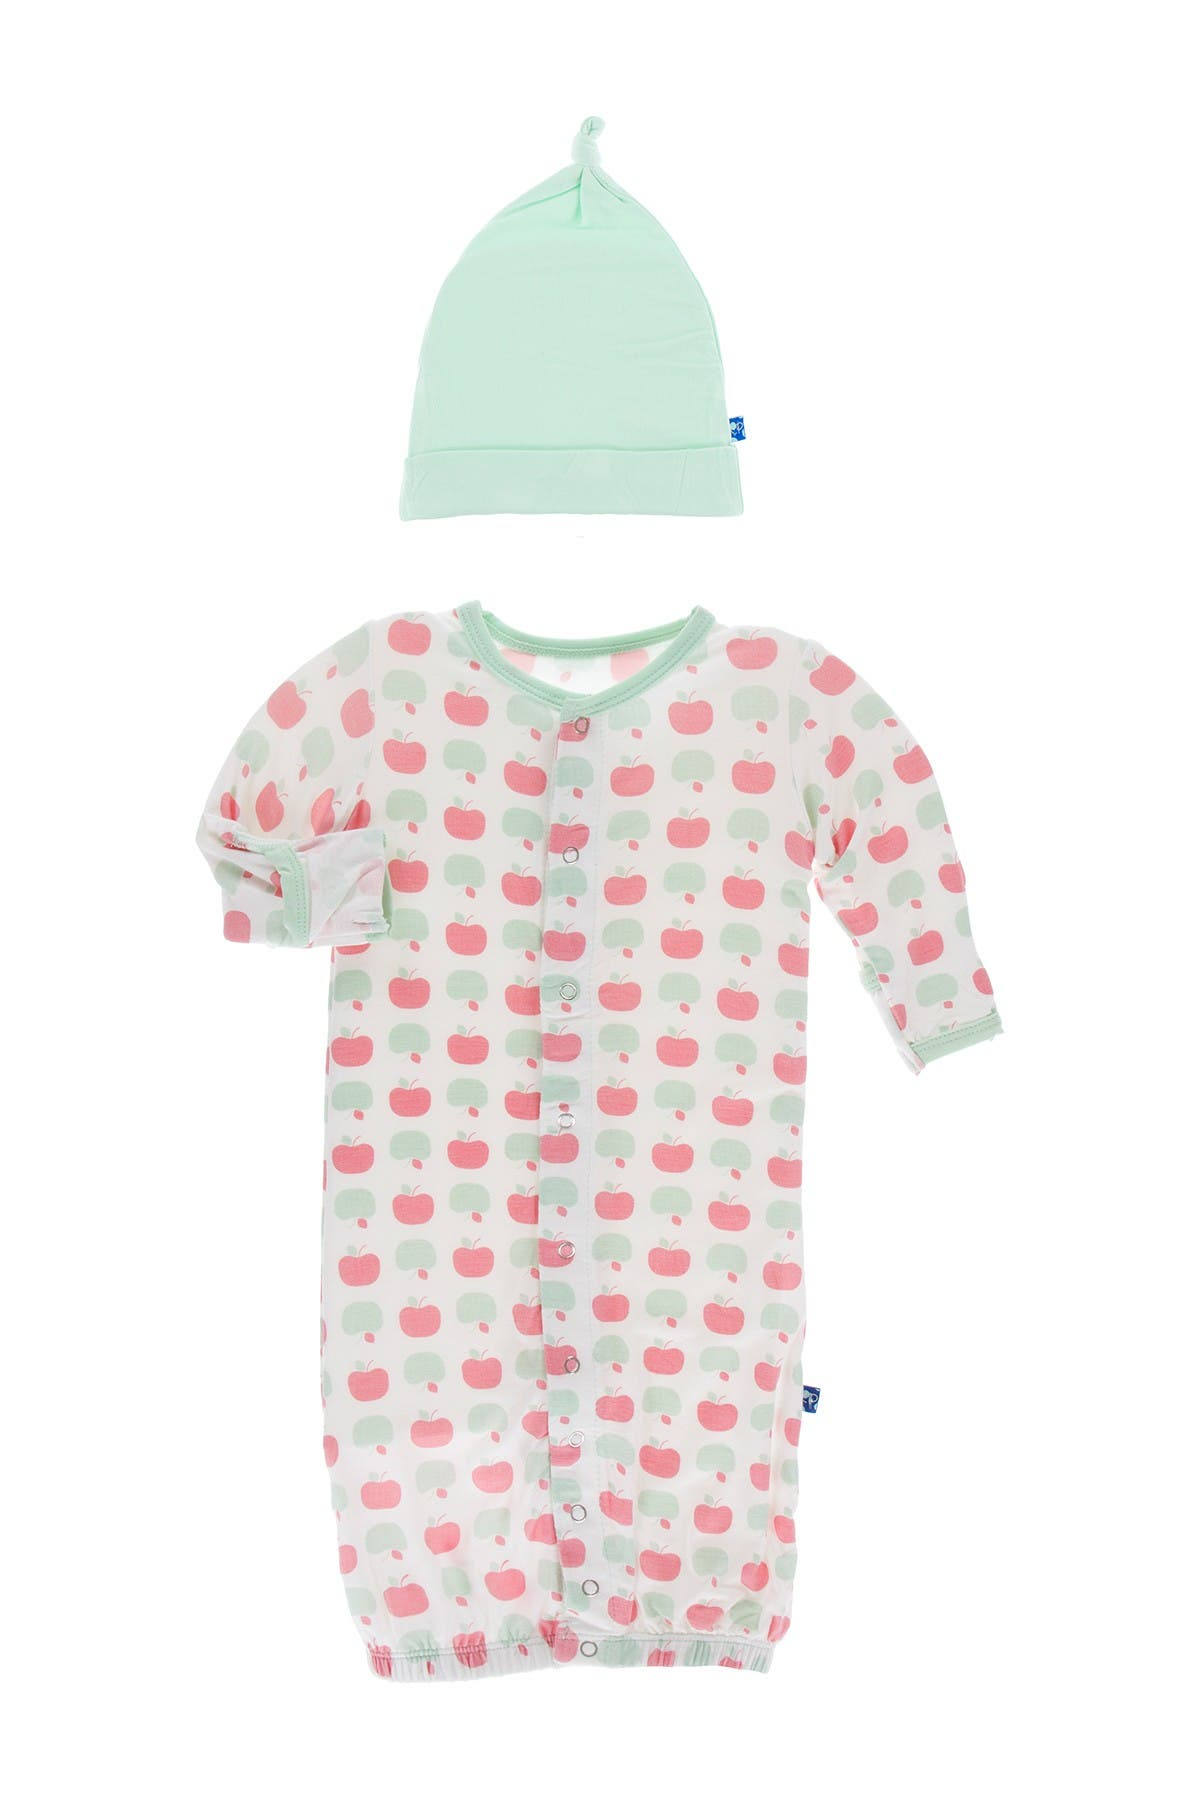 Image of KicKee Pants Print Layette Gown Converter & Knot Hat Set in Natural Apples